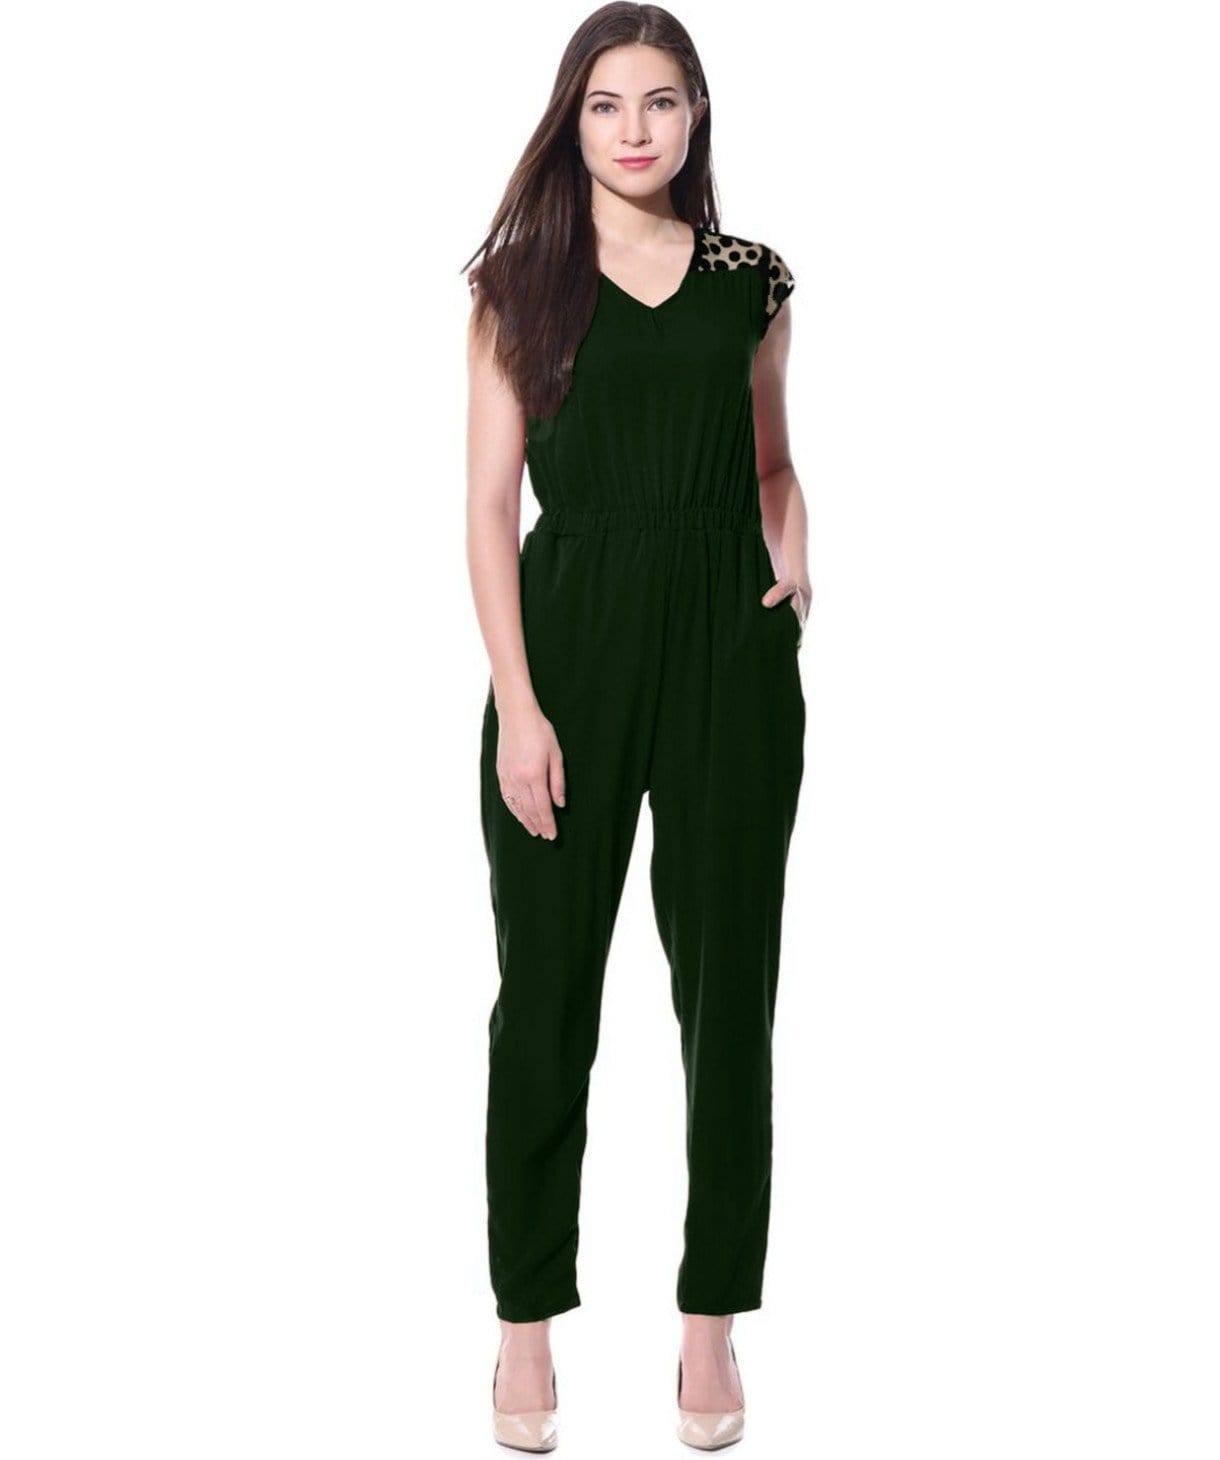 Green with Black Polka Lace Detailed Jumpsuit - Uptownie